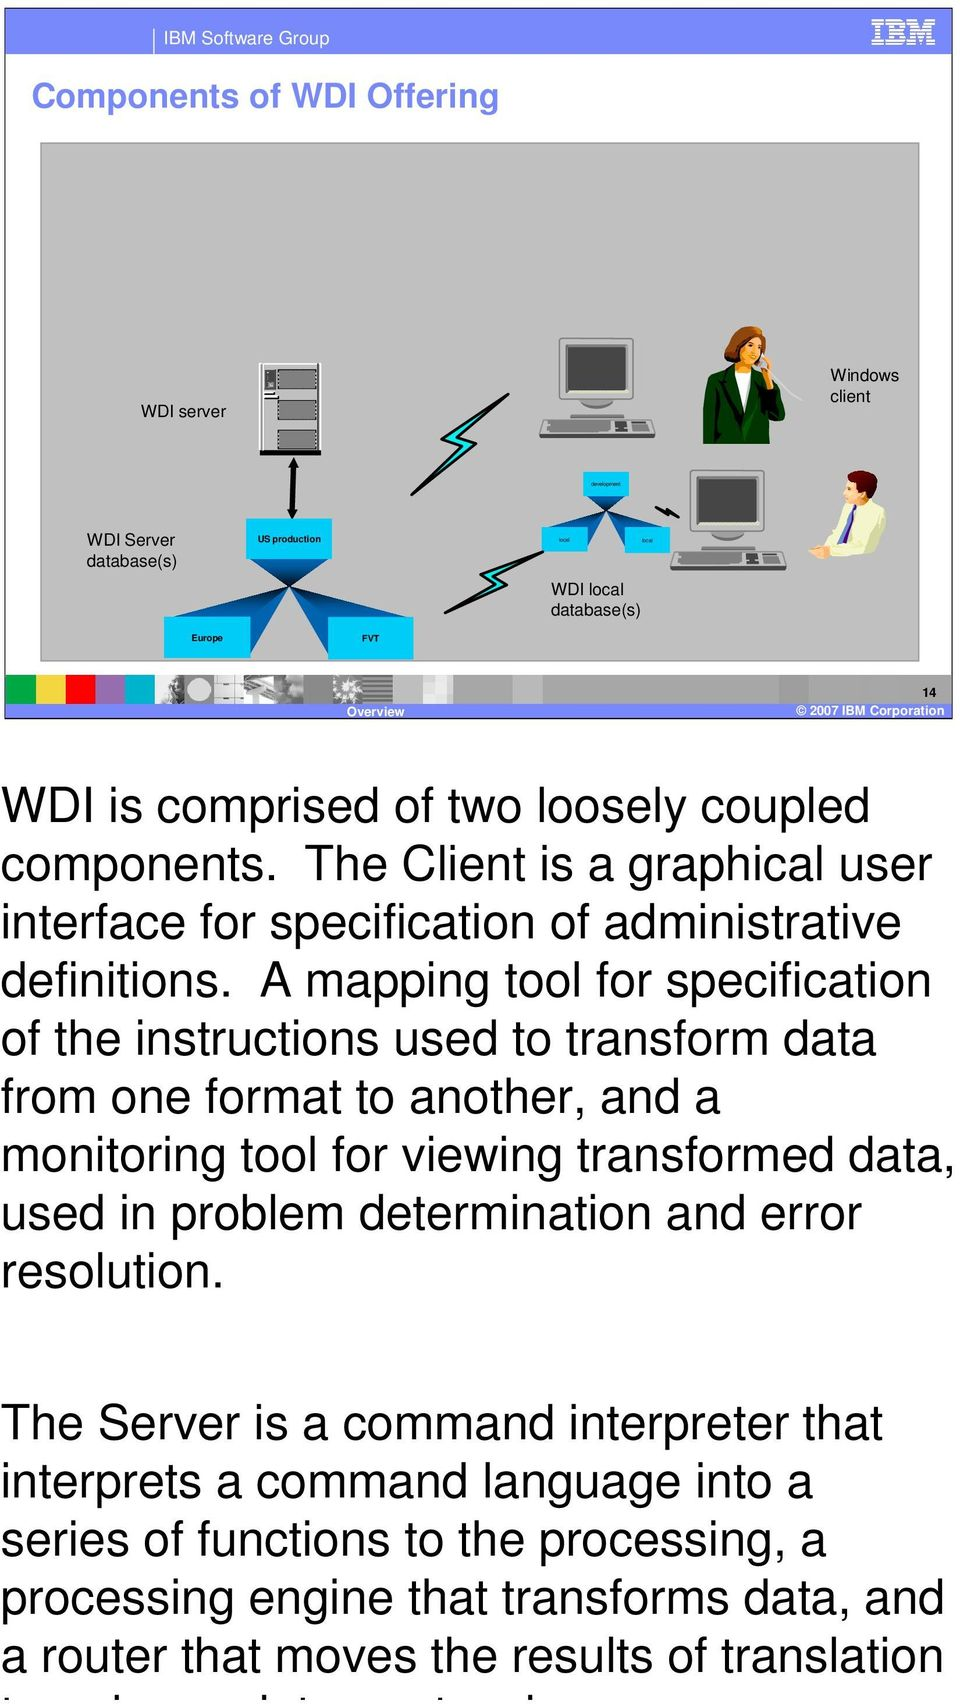 IBM Software Group Components of WDI Offering WDI is comprised of three loosely coupled components the WDI User Interface Windows based GUI, WDI Client Host based user interface for limited